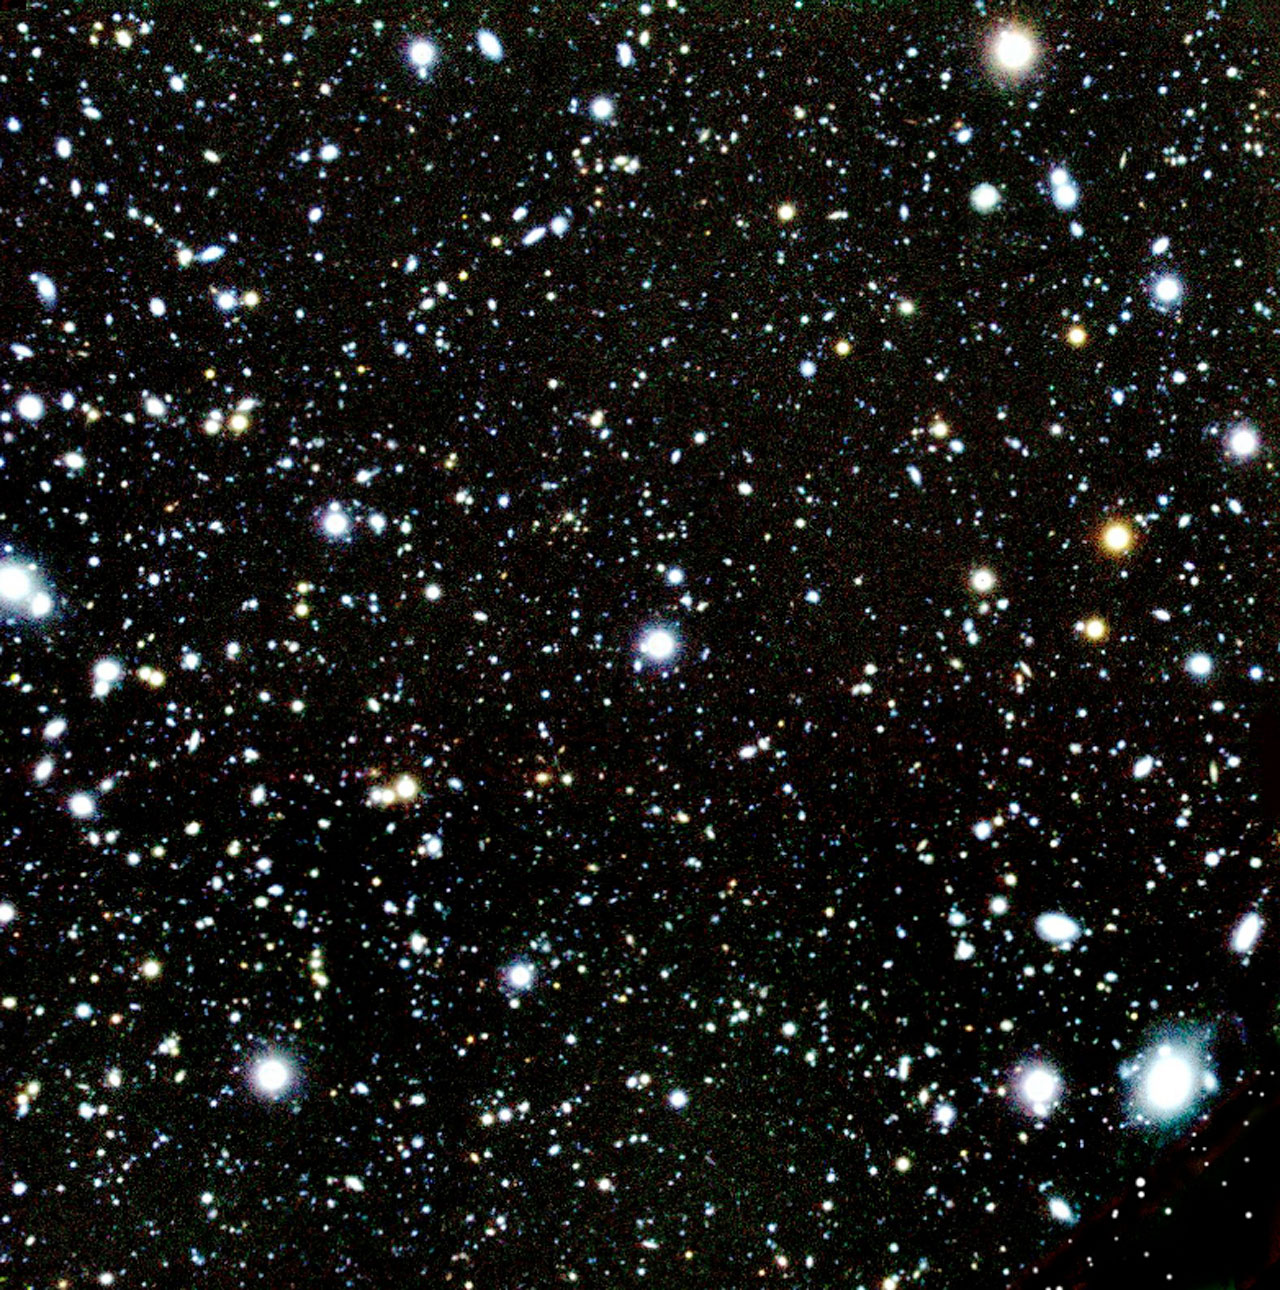 Colour-Composite of the Sky Field with Several High-Redshift Galaxies